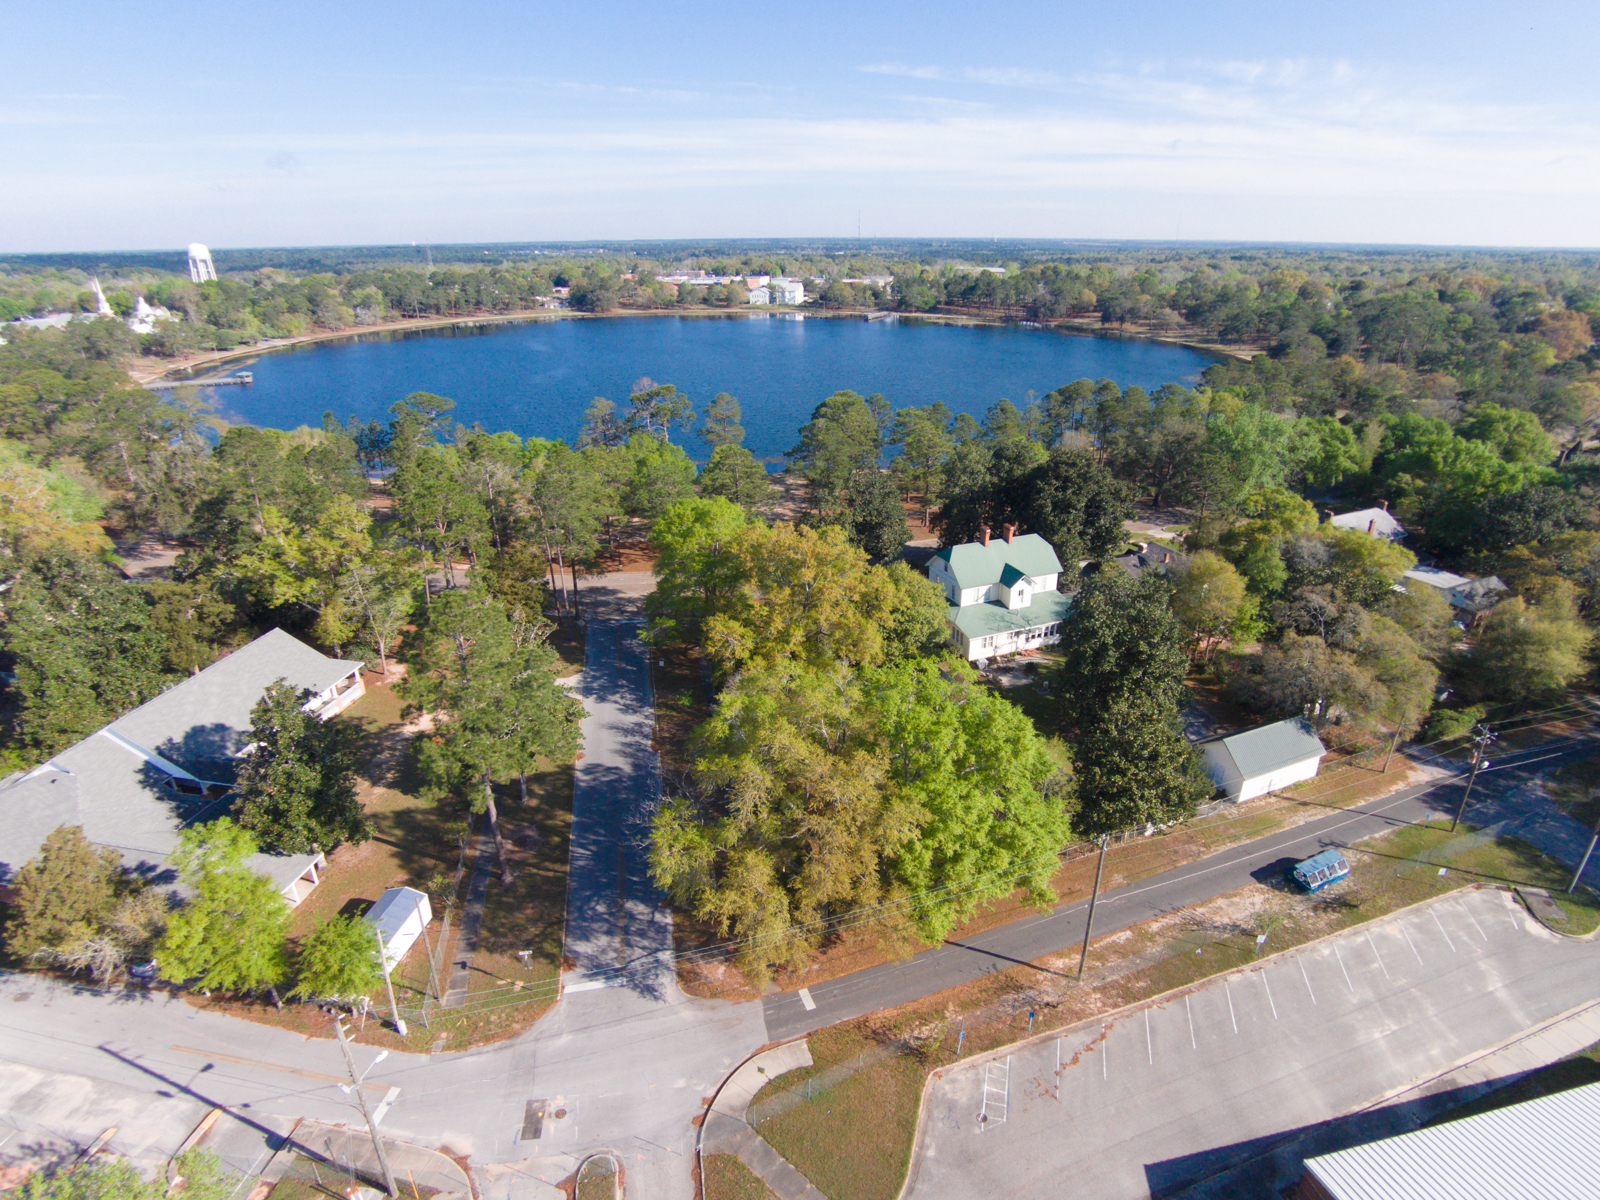 Land for Sale at RARE LAKEFRONT LOT IN HISTORIC NEIGHBORHOOD 236 Circle Drive Defuniak Springs, Florida 32435 United States